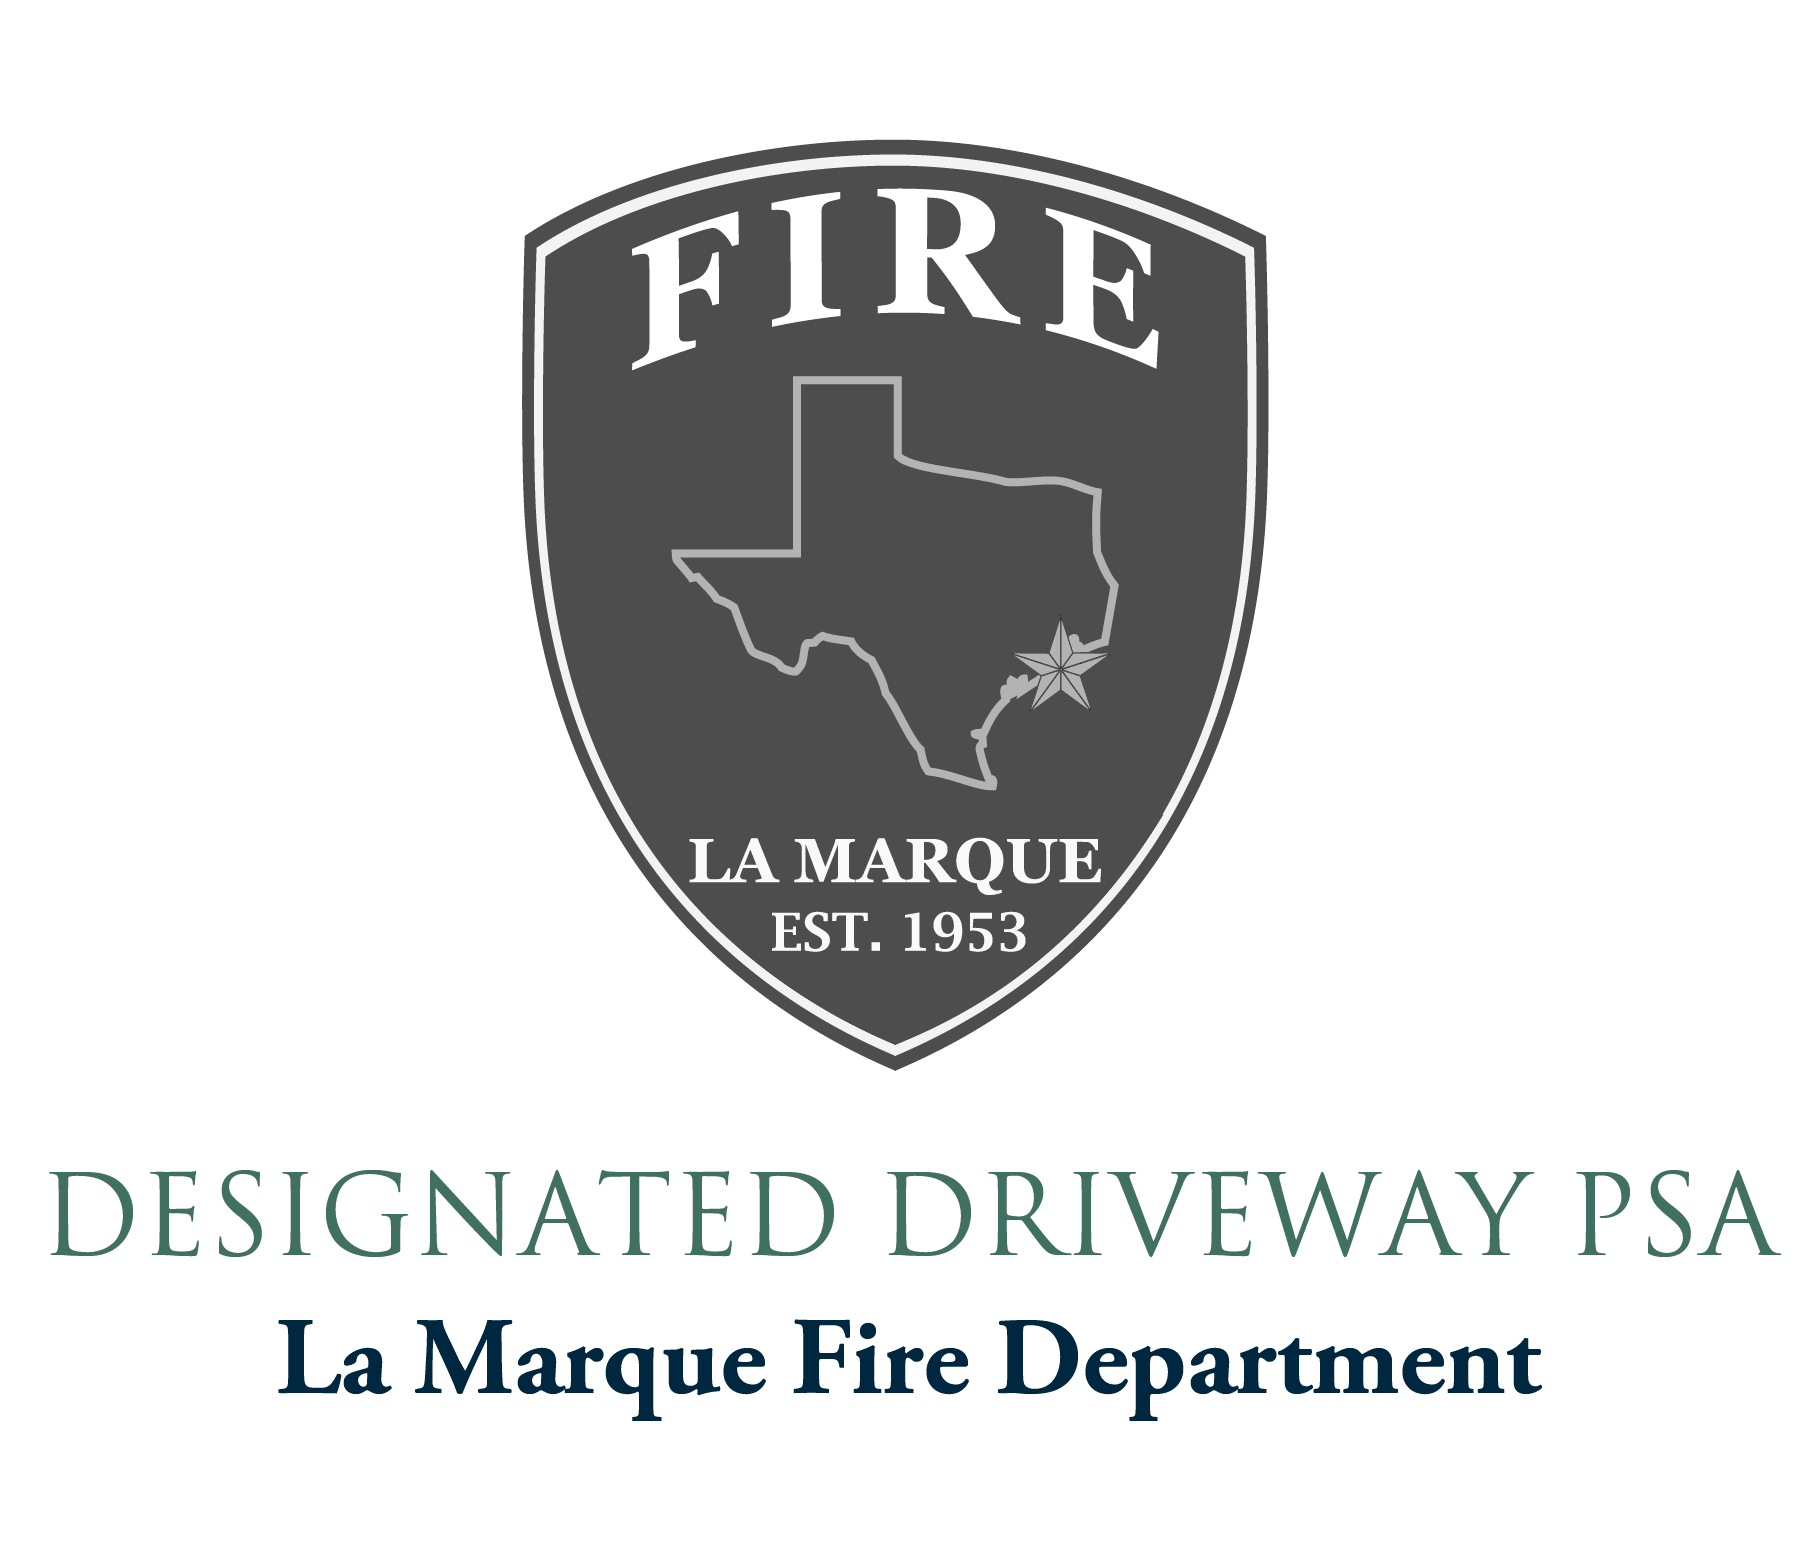 PSA Parking graphic with LMFD seal_102319